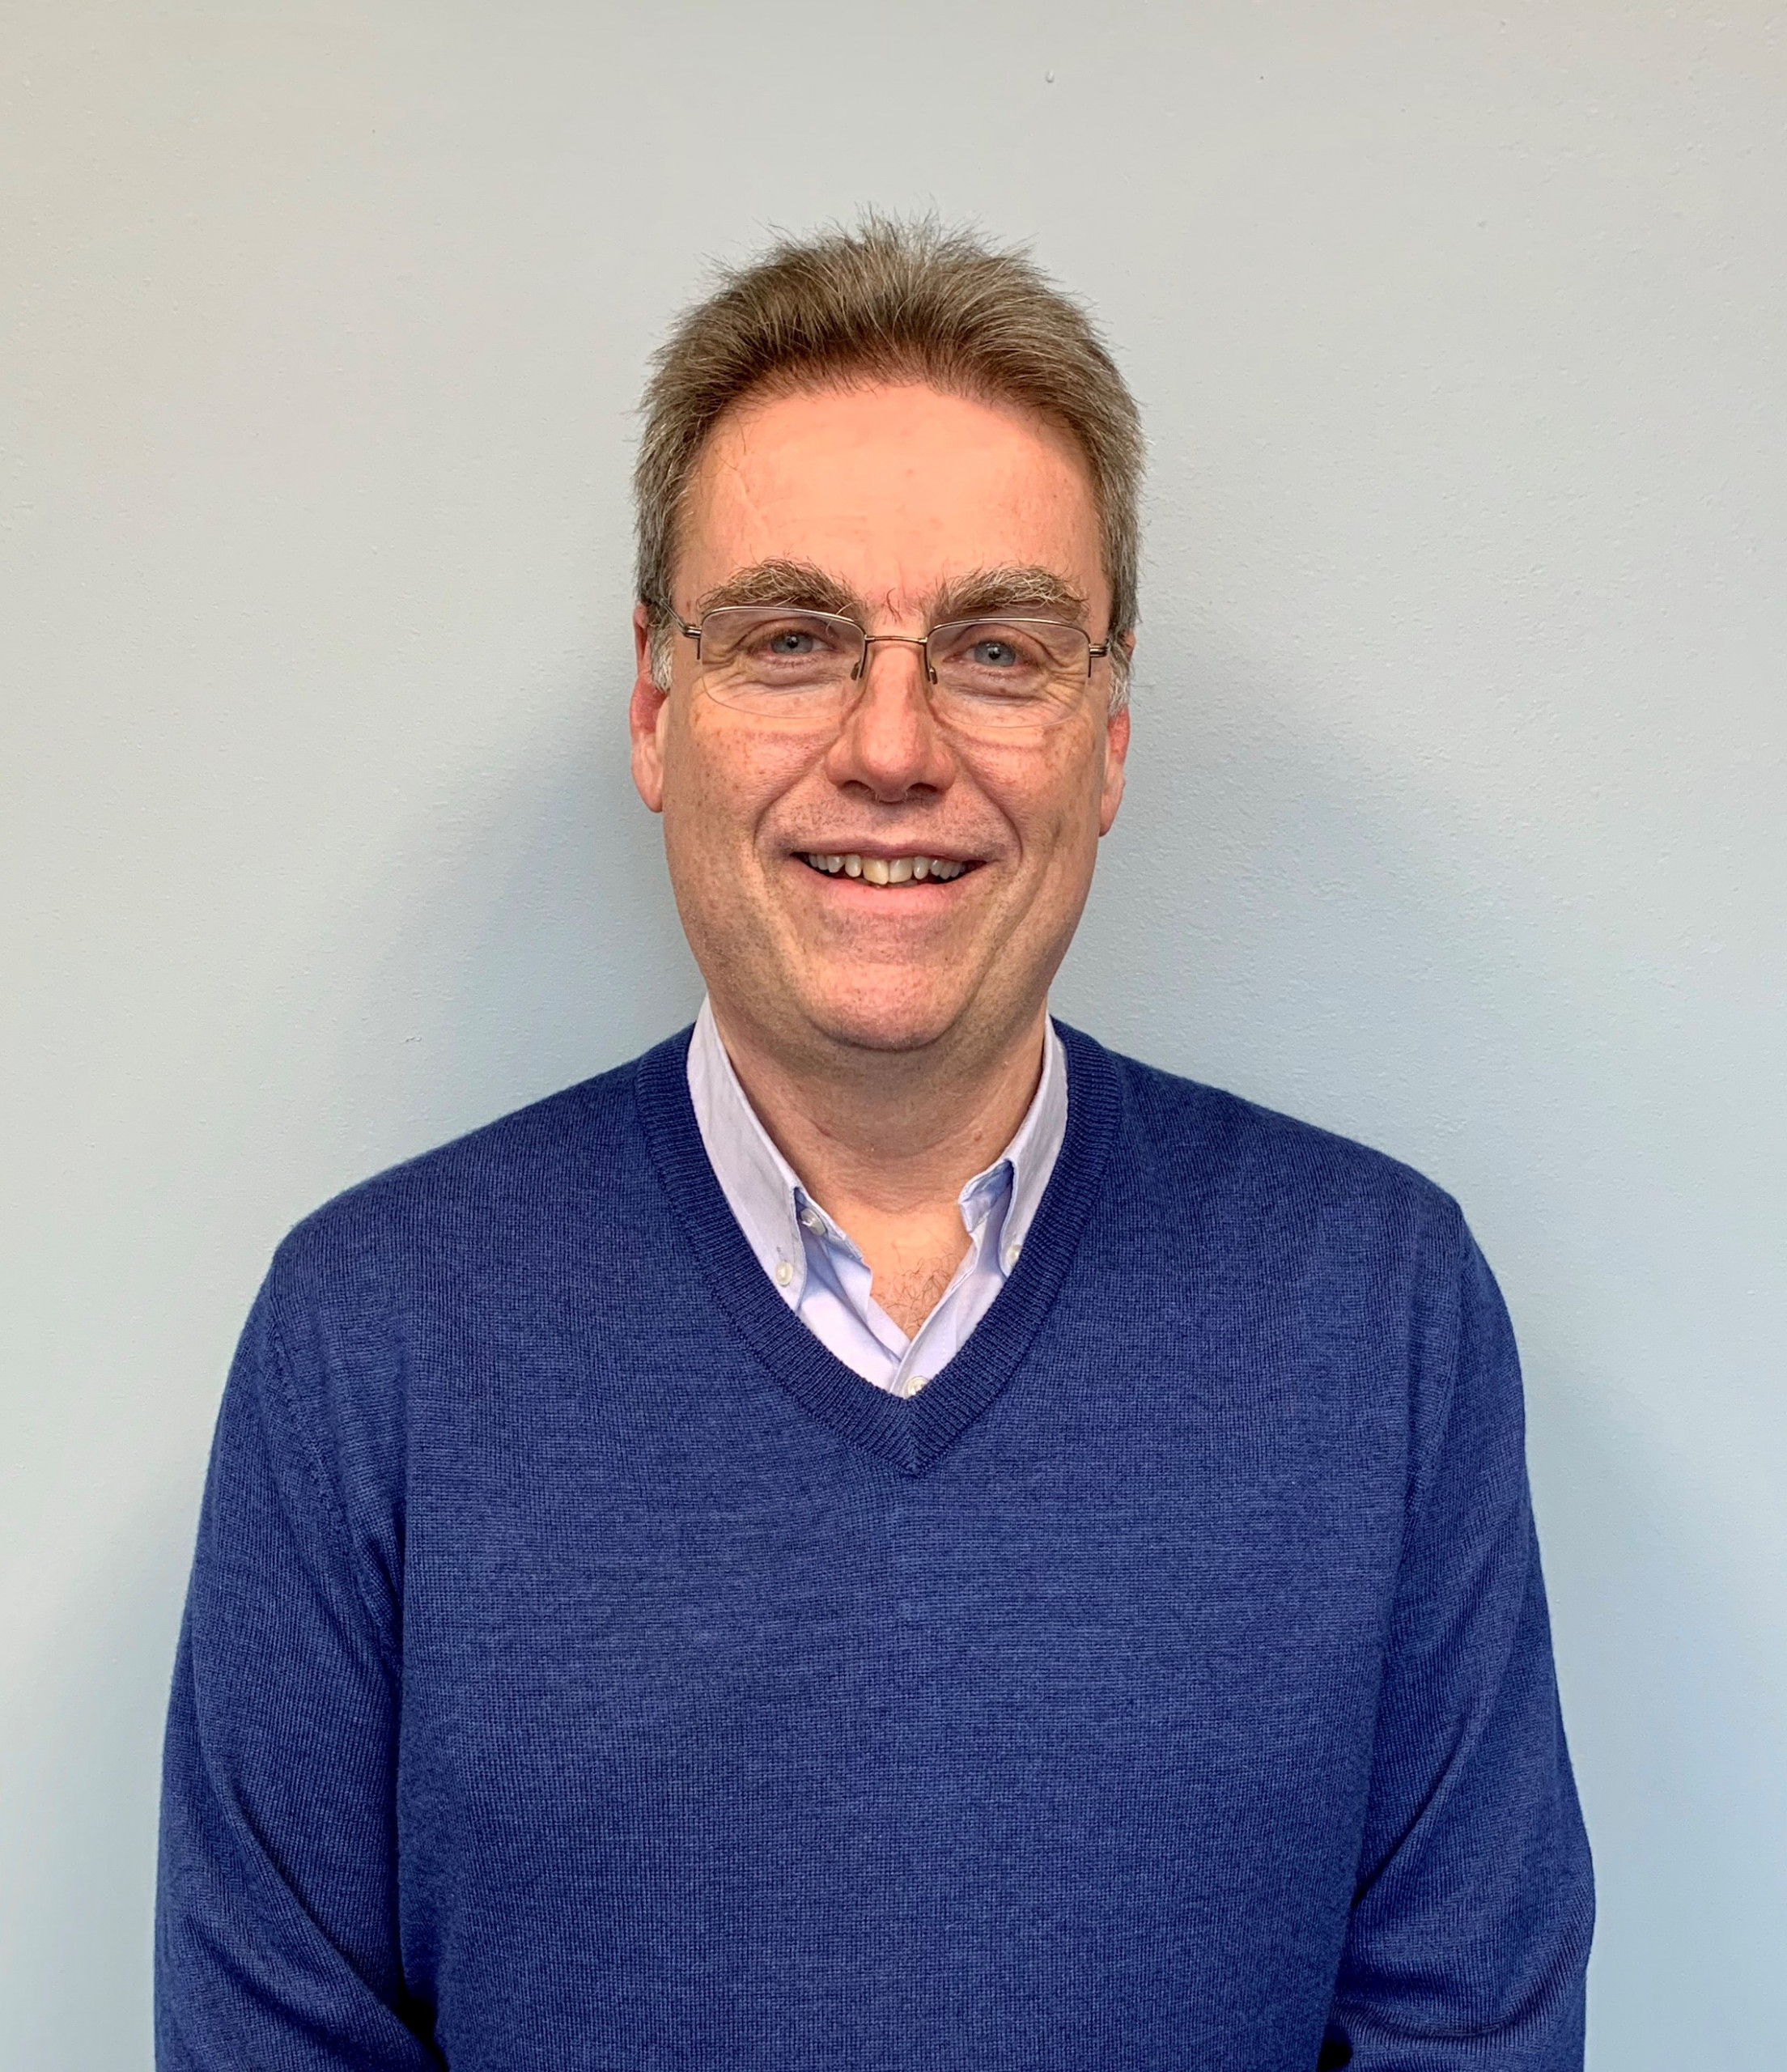 Photo of Dave O'Hare, Director of Business Development at Integrated Systems